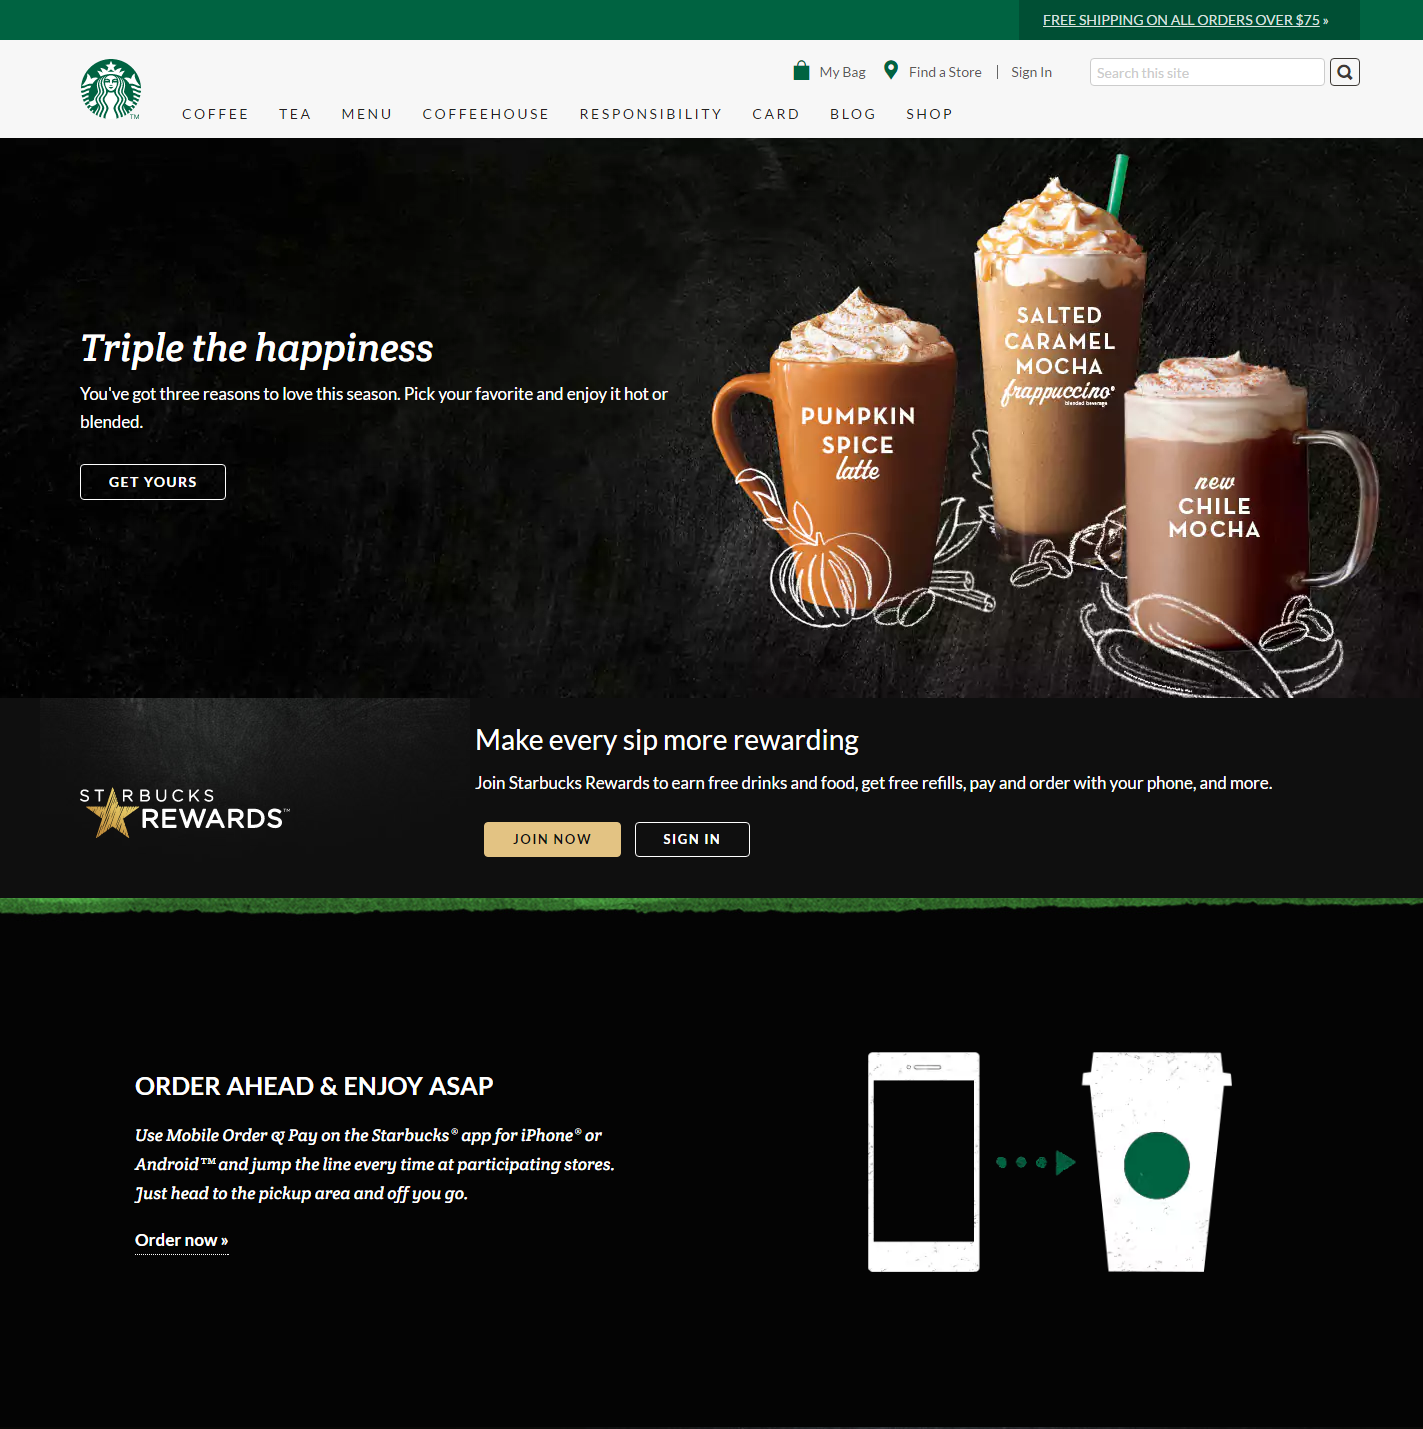 Starbucks Coupon Code 21 Amp More Starbucks Discount Codes Which Helps You To Save Up To 55 Of Starbucks Coupon Starbucks Rewards Discount Codes Coupon